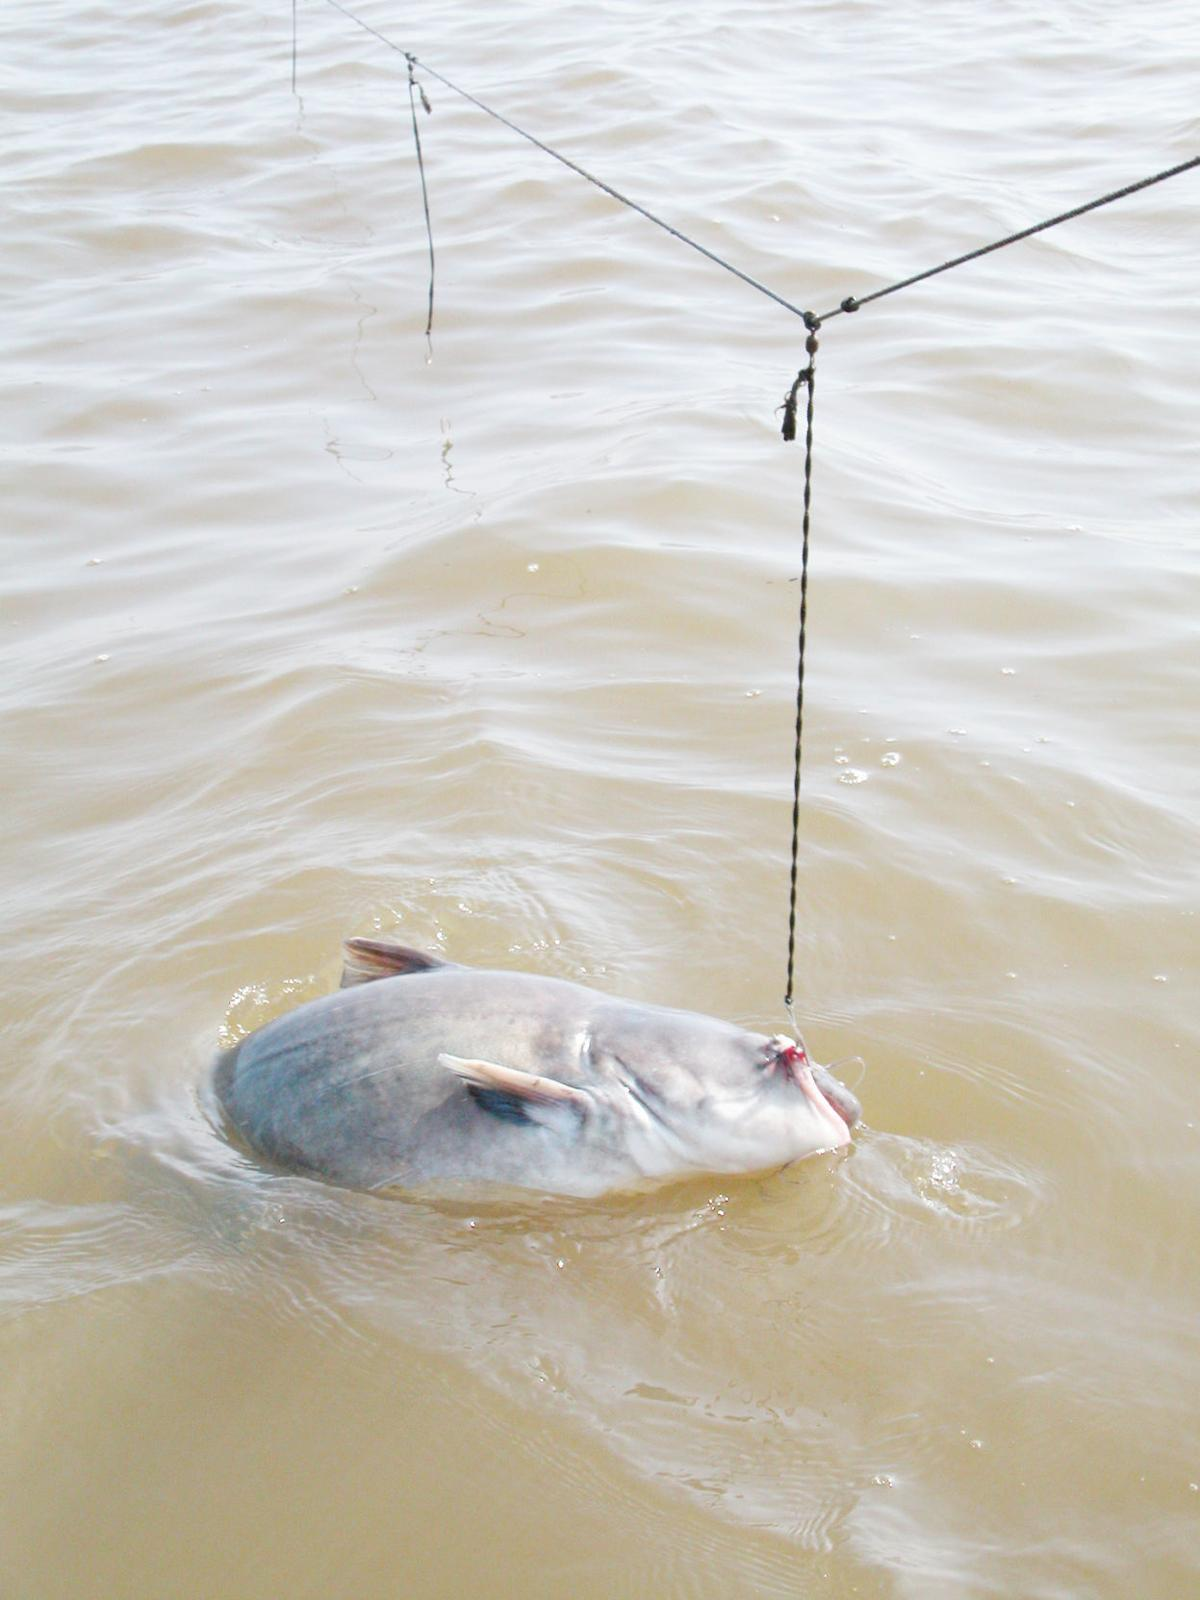 Catfish on hook